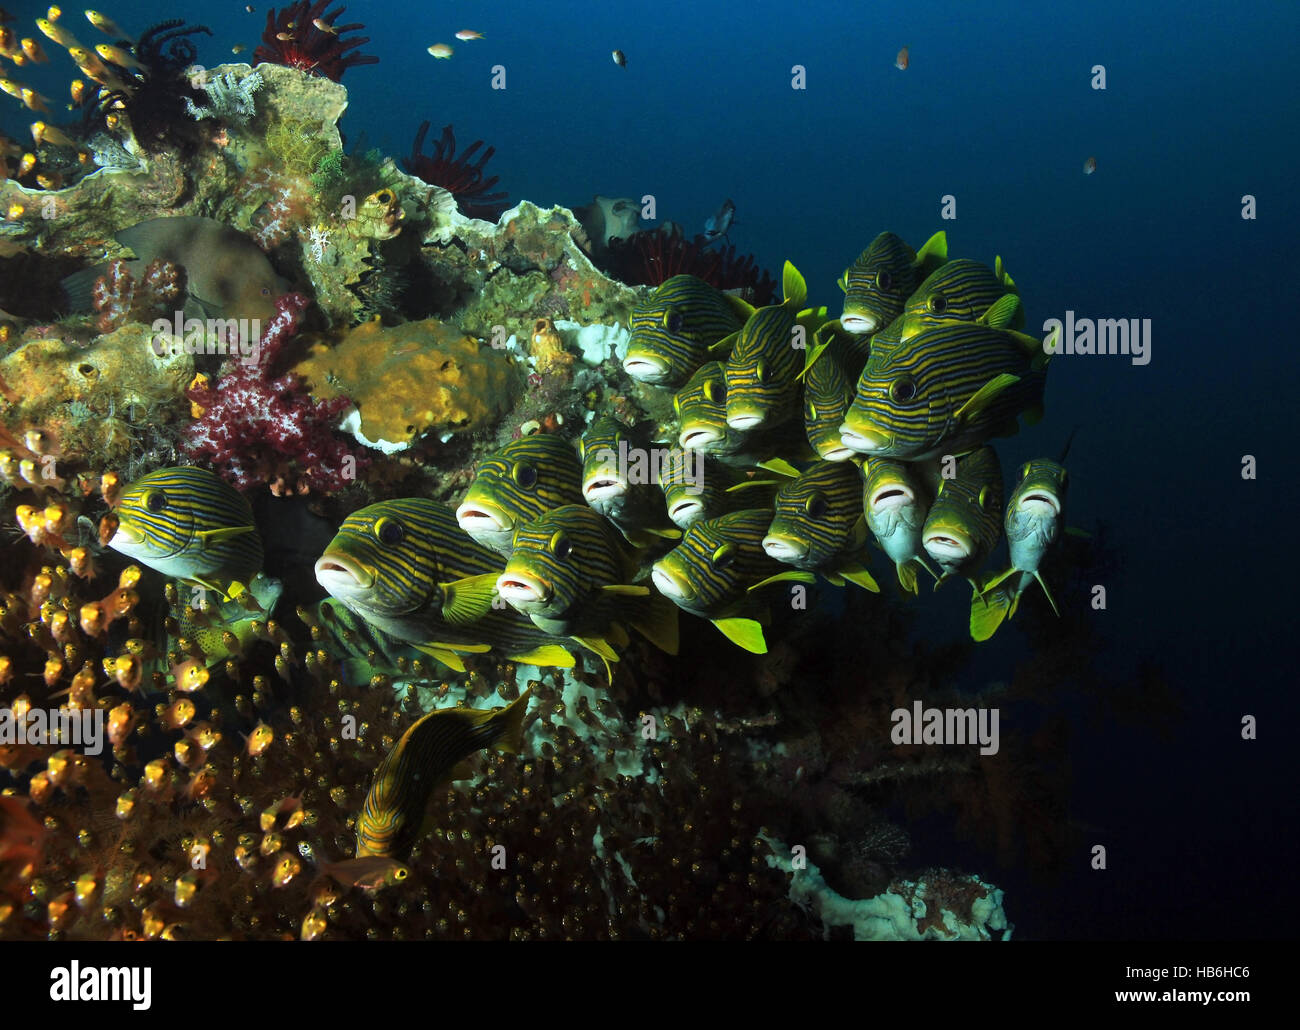 Schooling Glassfish and Ribboned Sweetlips at a Colorful Coral Reef. Raja Ampat, Indonesia - Stock Image